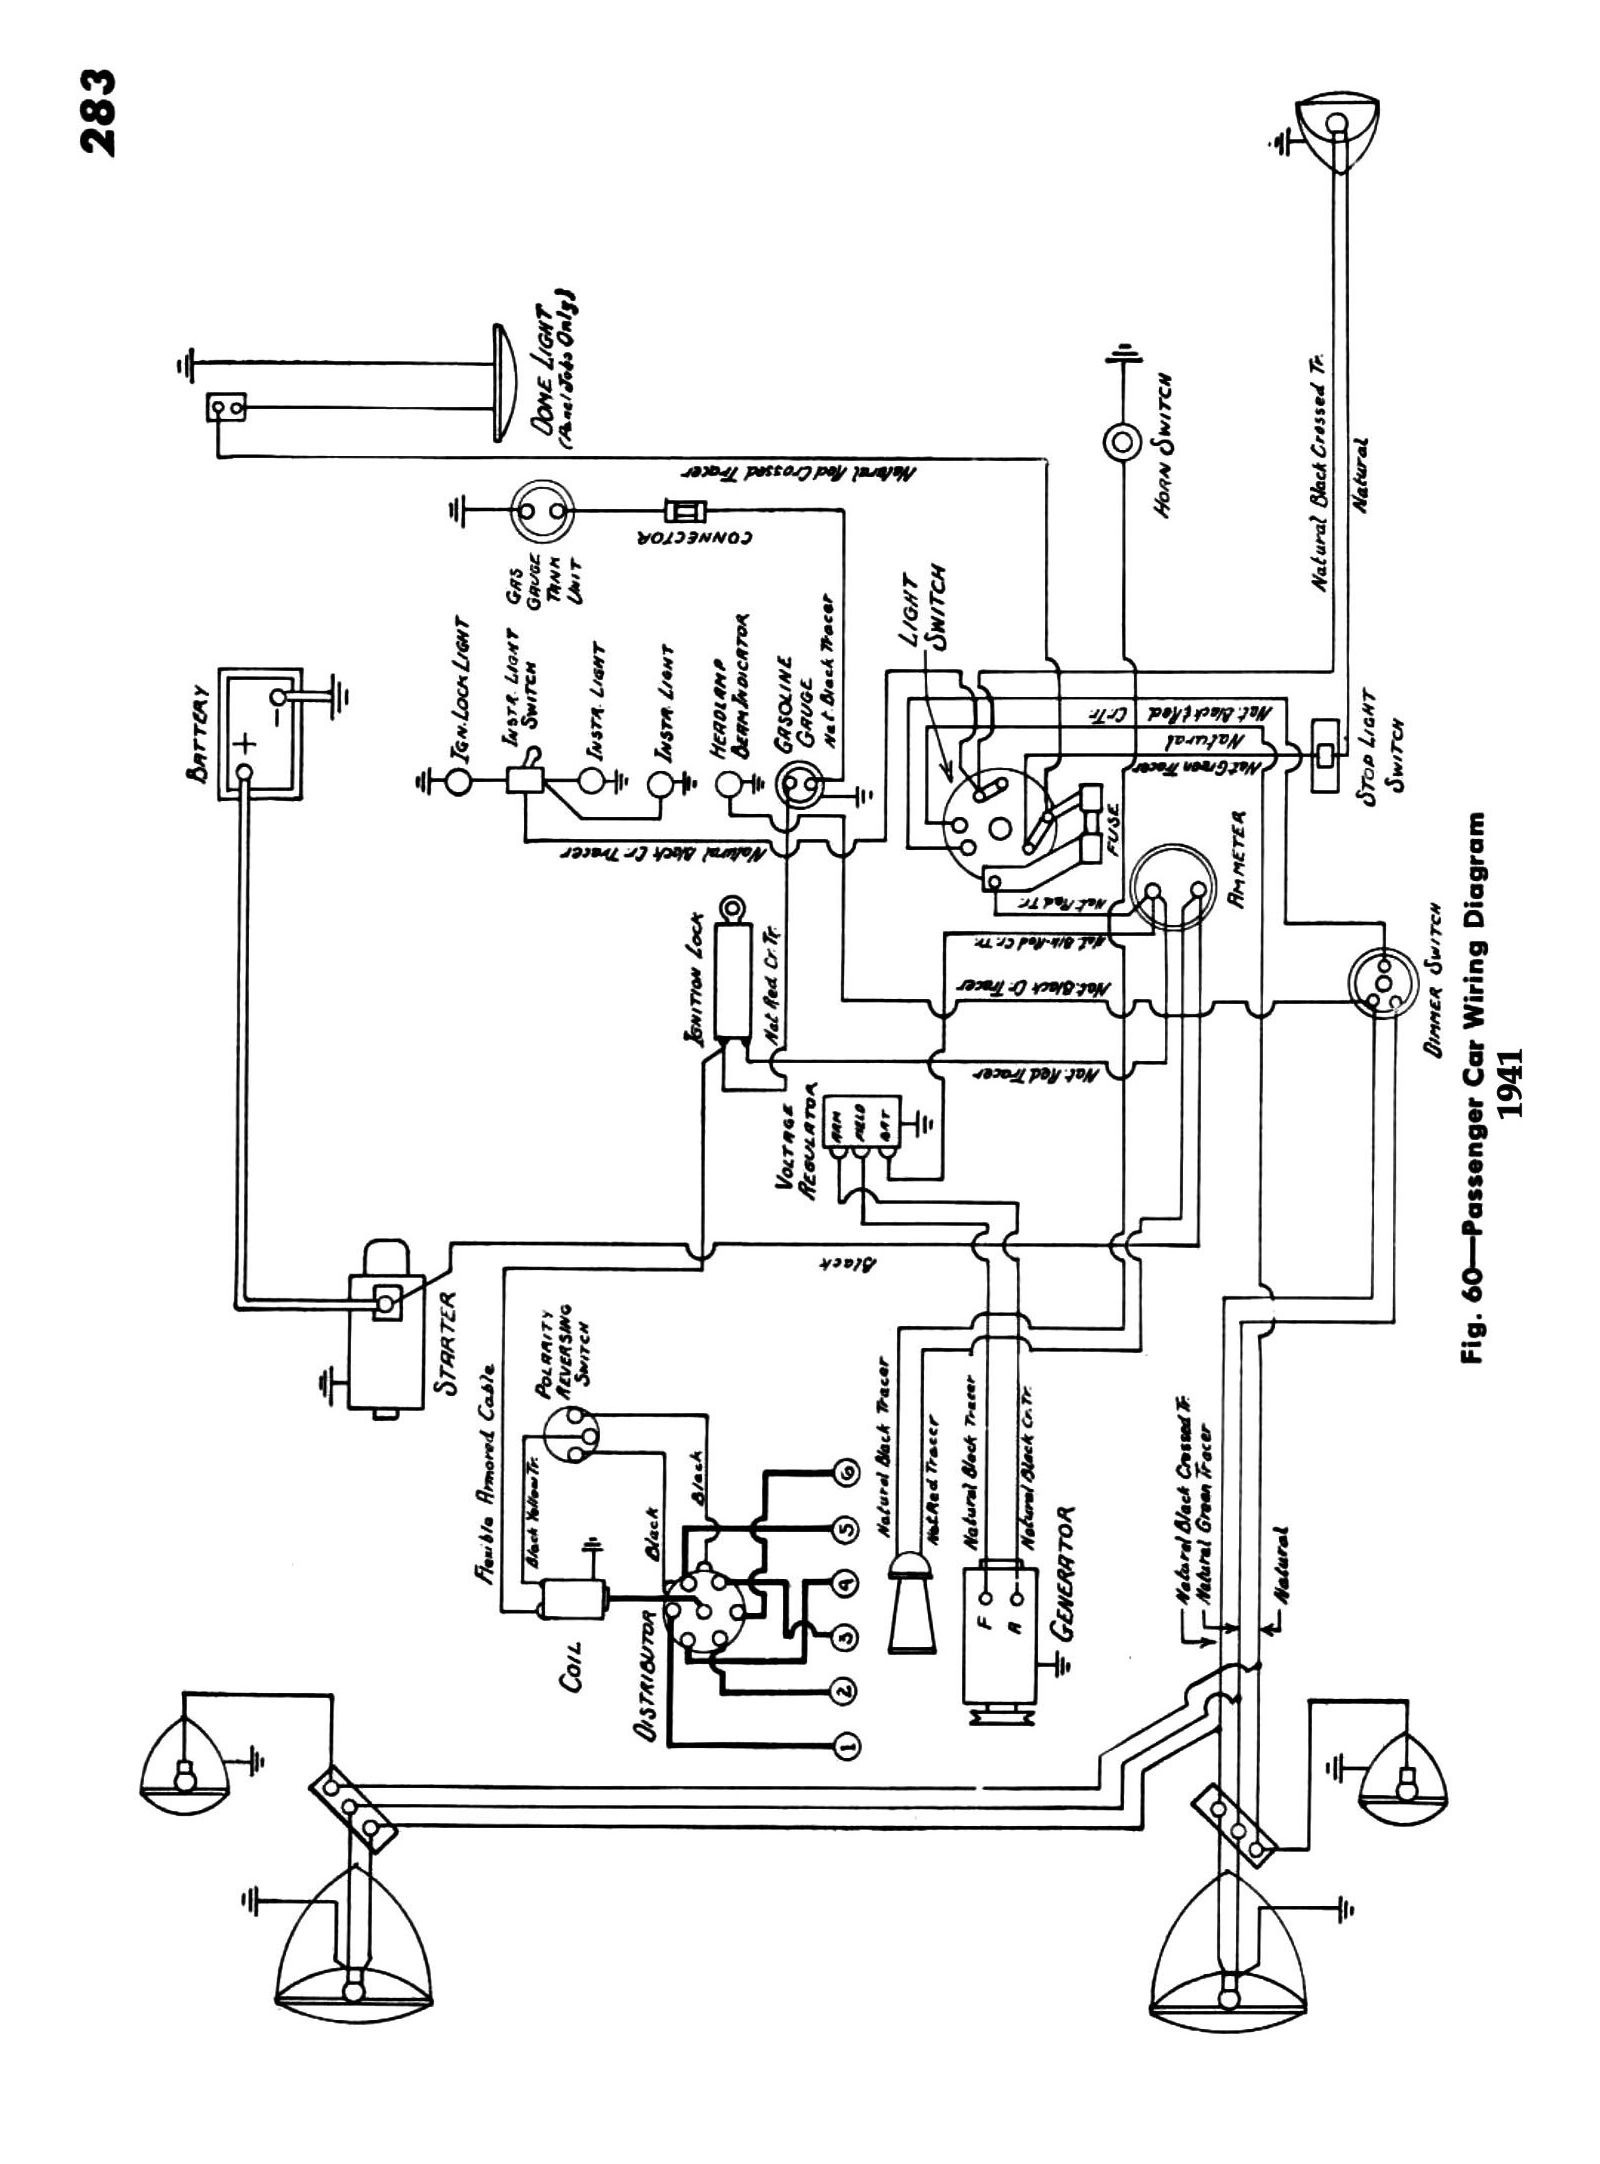 41csm283 chevy wiring diagrams 1946 ford truck wiring diagram at bayanpartner.co